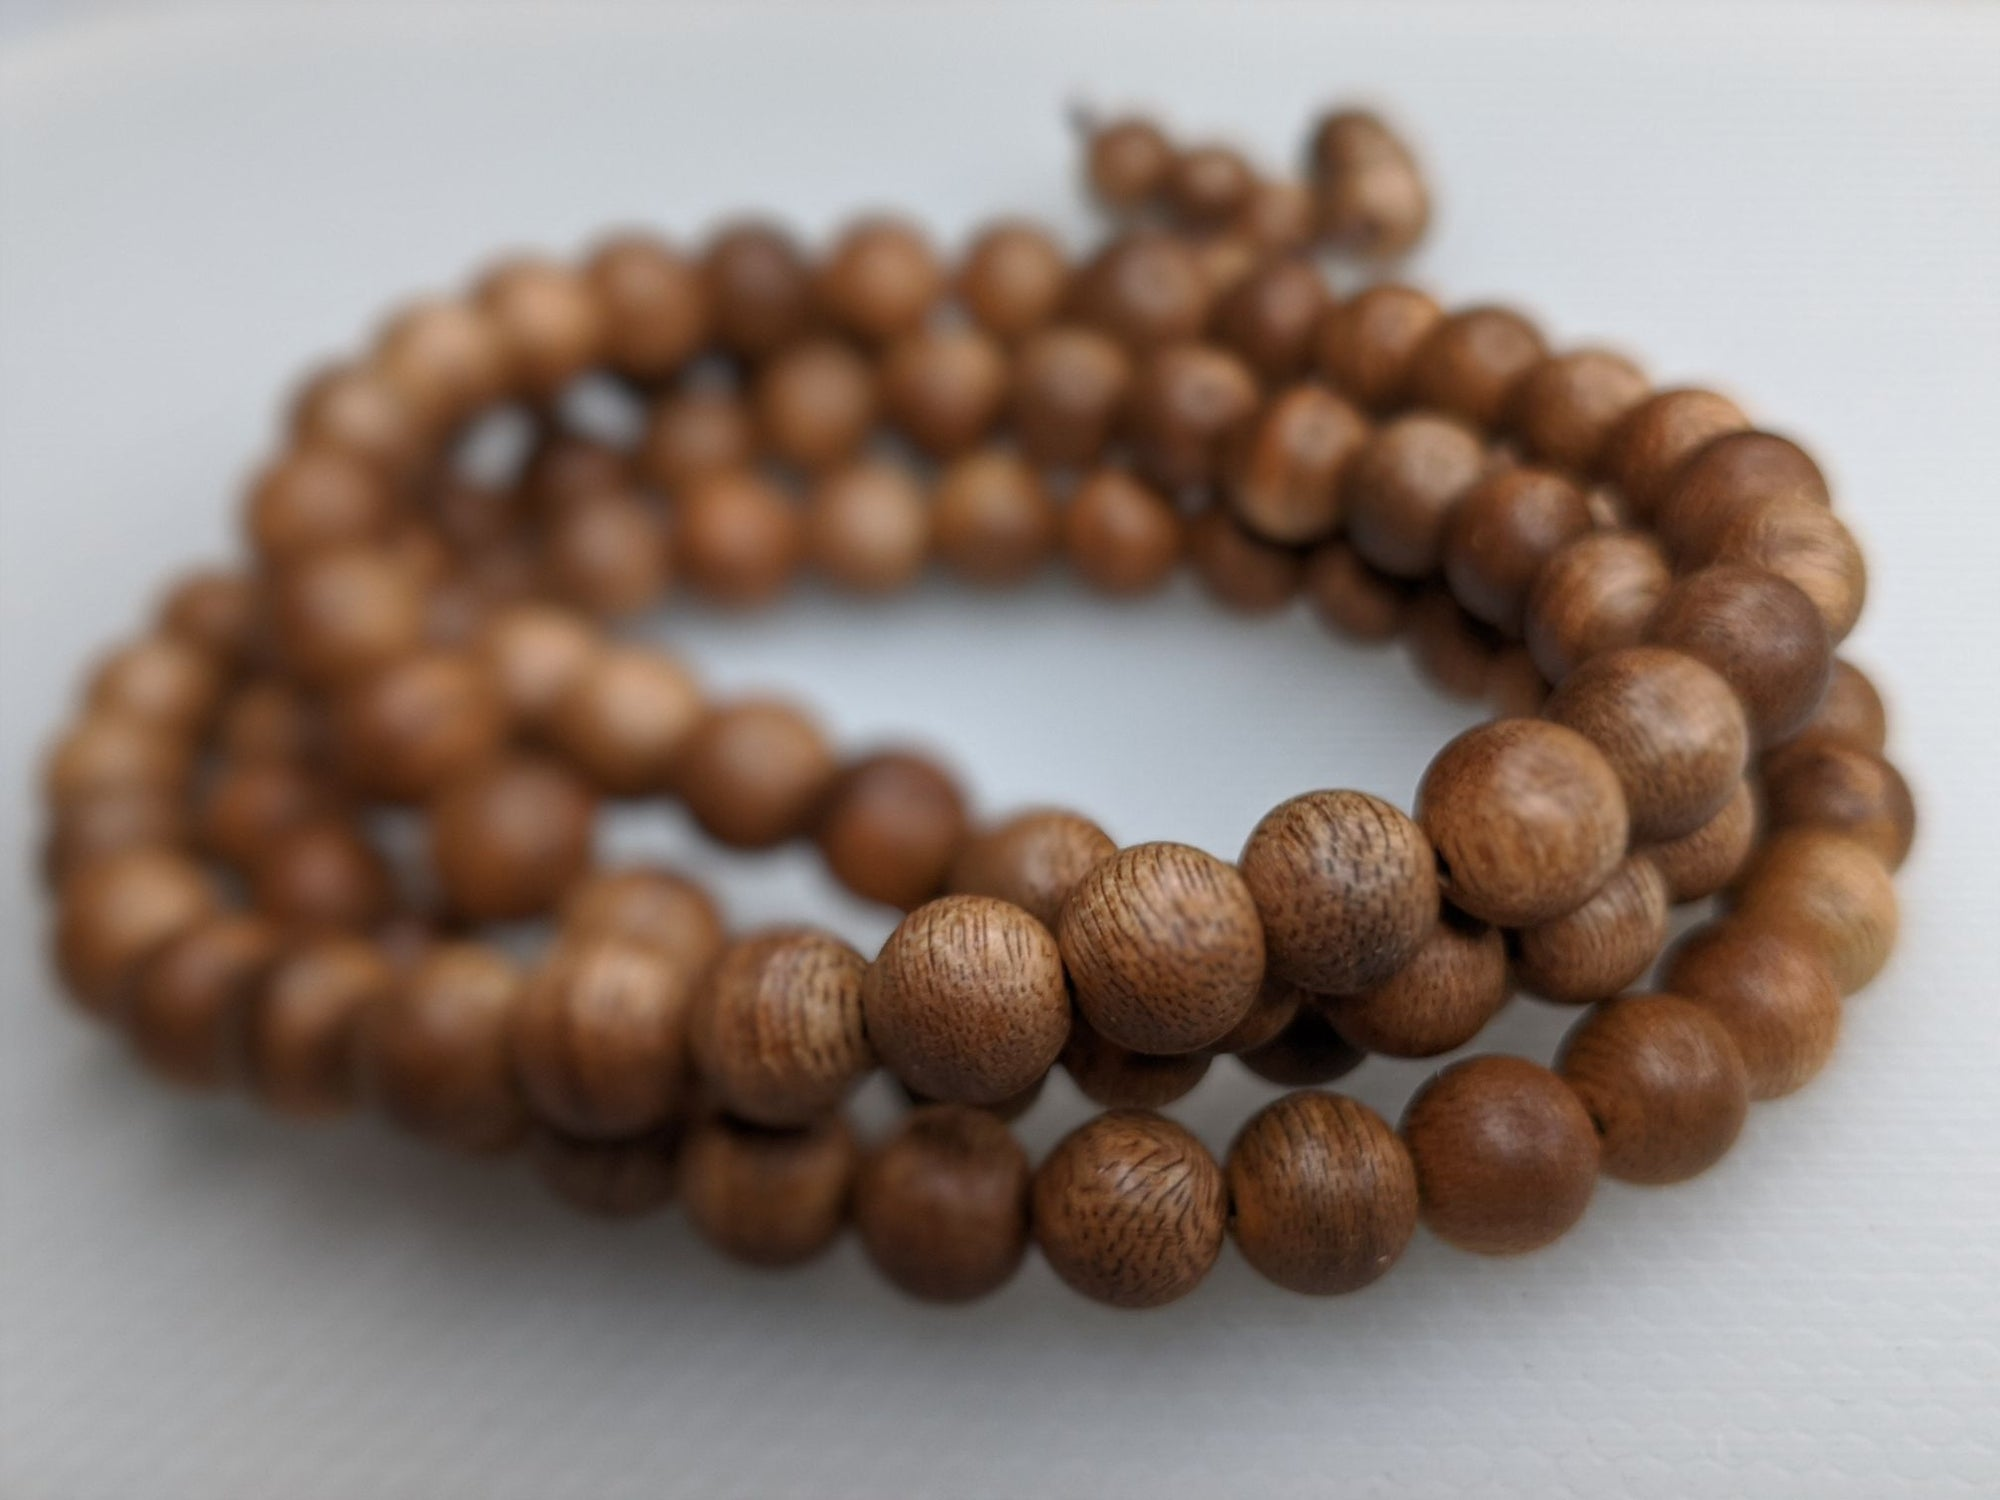 *New* The Golden Purifier 108 Cultivated Agarwood Mala (Japamala) - Grandawood- Agarwood Australia